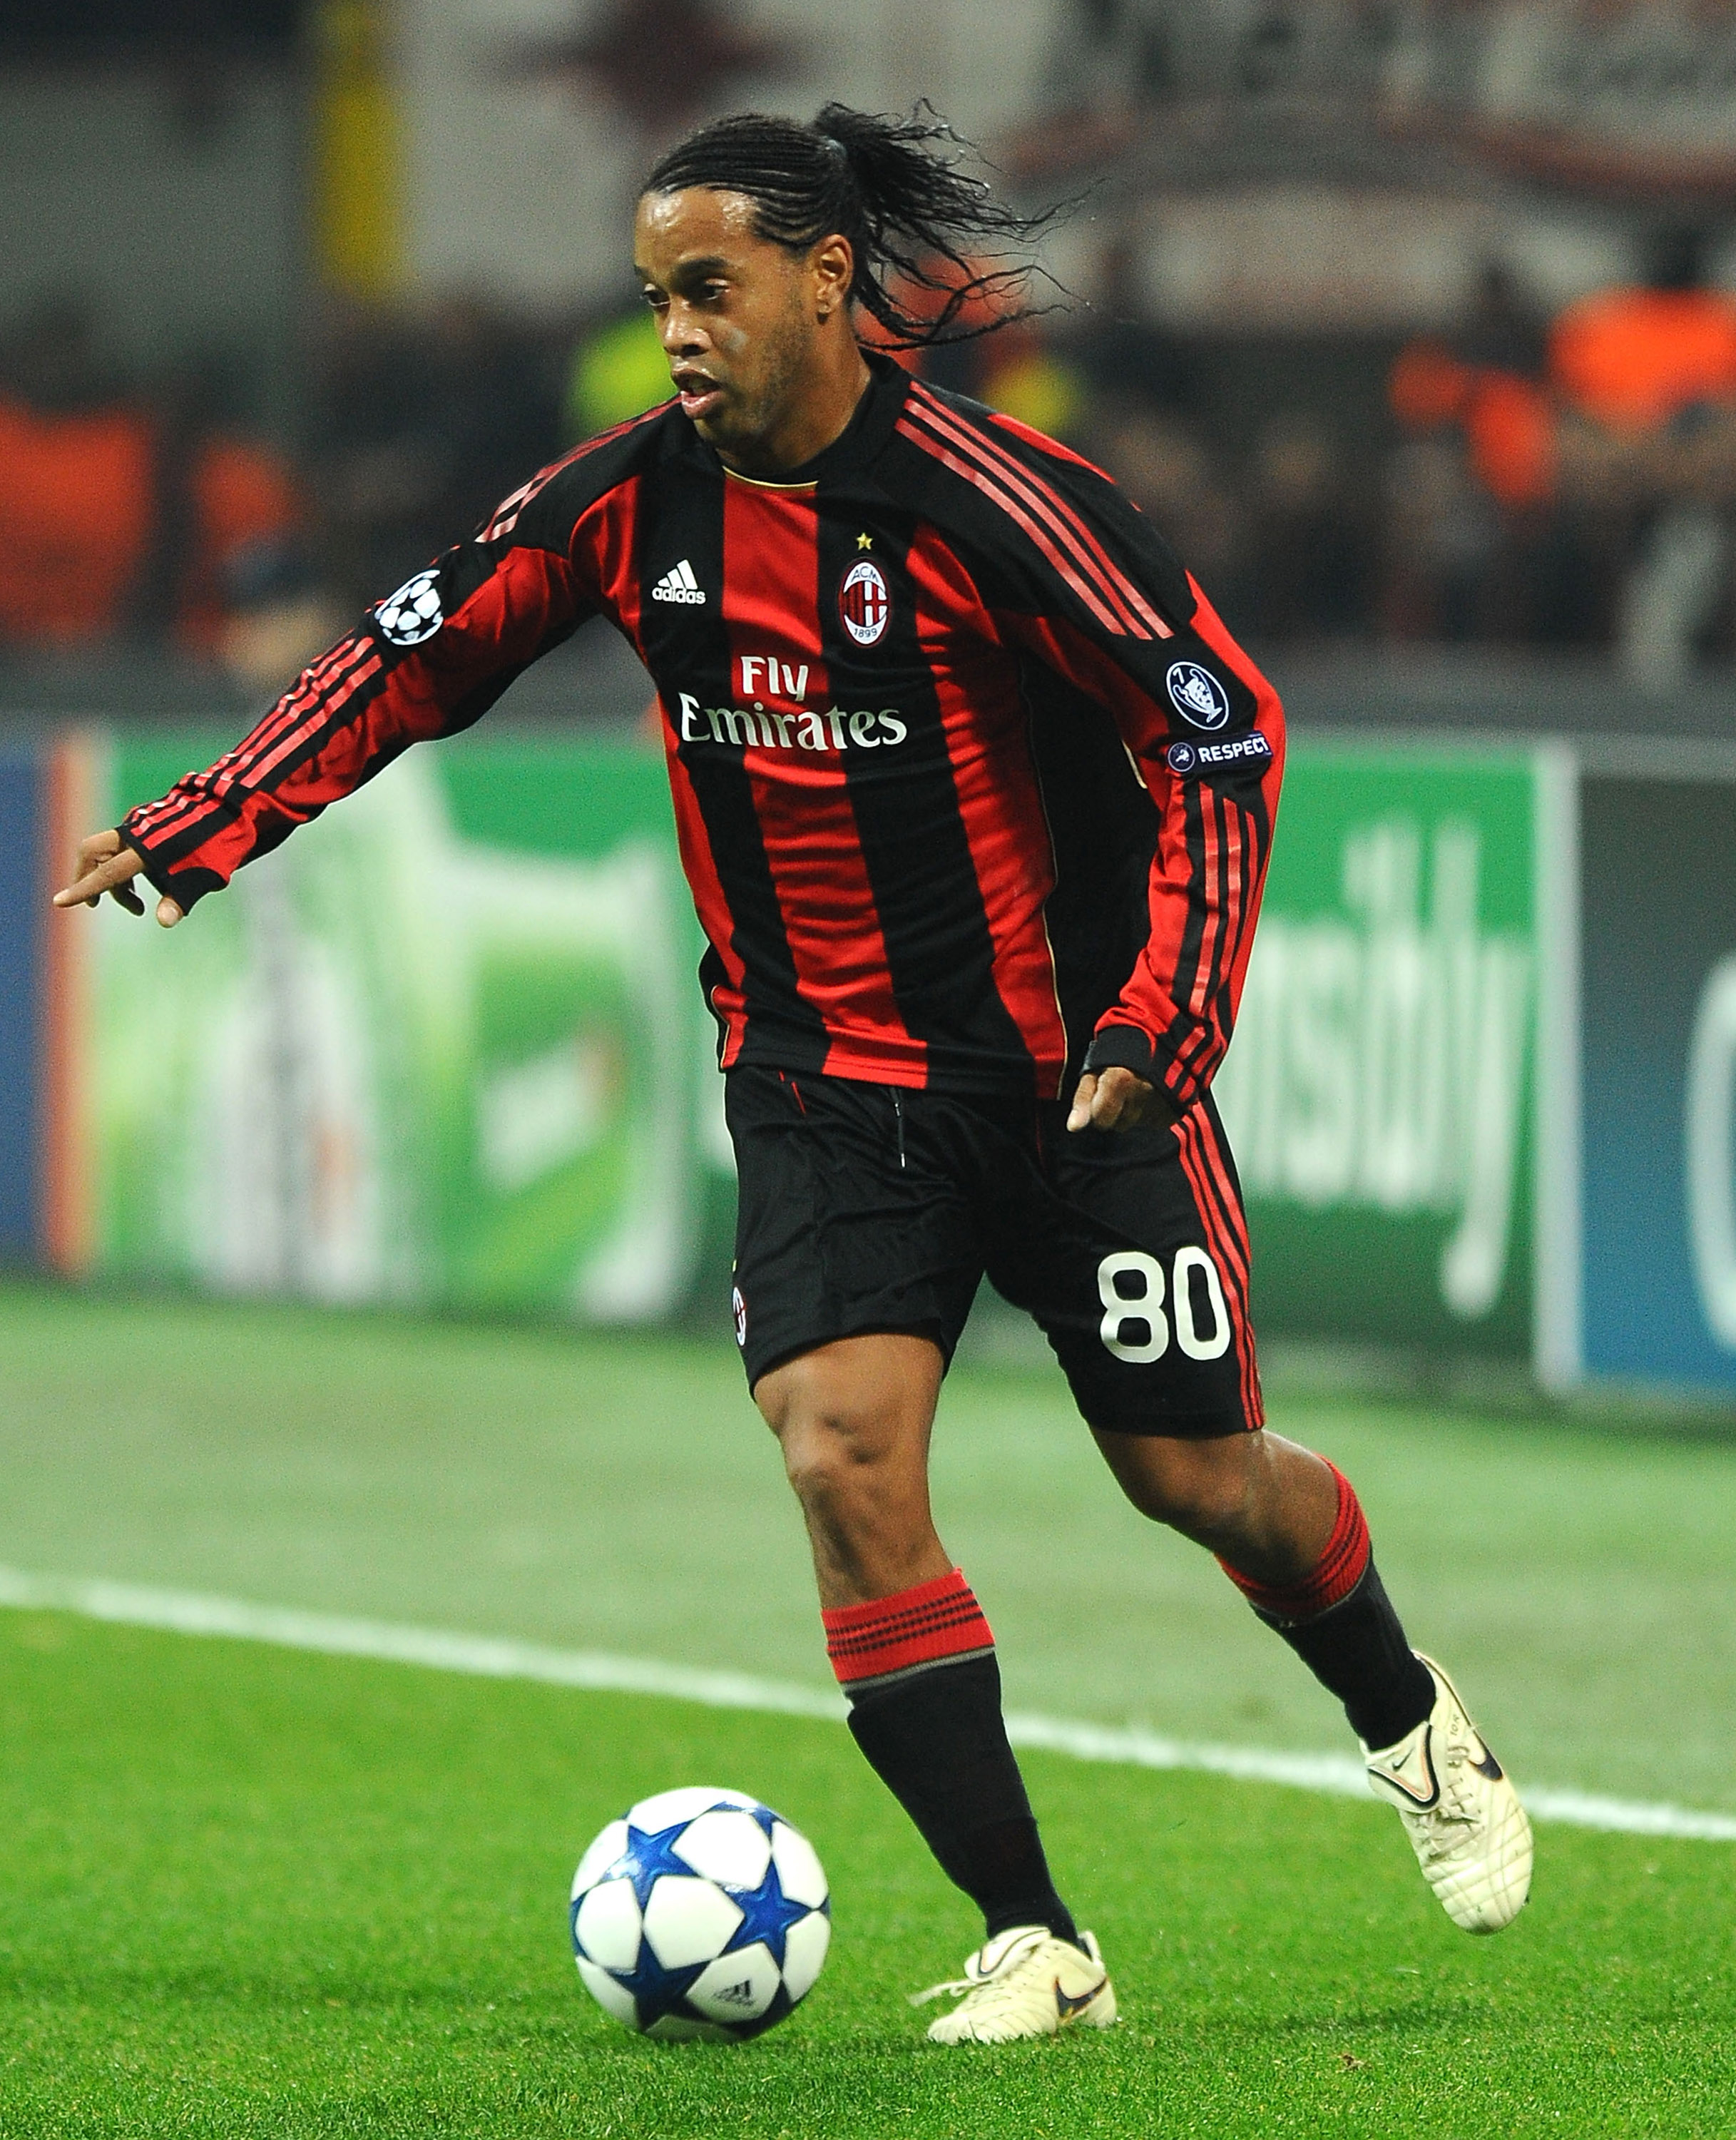 MILAN, ITALY - NOVEMBER 03: Ronaldinho of AC Milan in action during the UEFA Champions League group G match between AC Milan and Real Madrid at Stadio Giuseppe Meazza on November 3, 2010 in Milan, Italy. (Photo by Massimo Cebrelli/Getty Images)